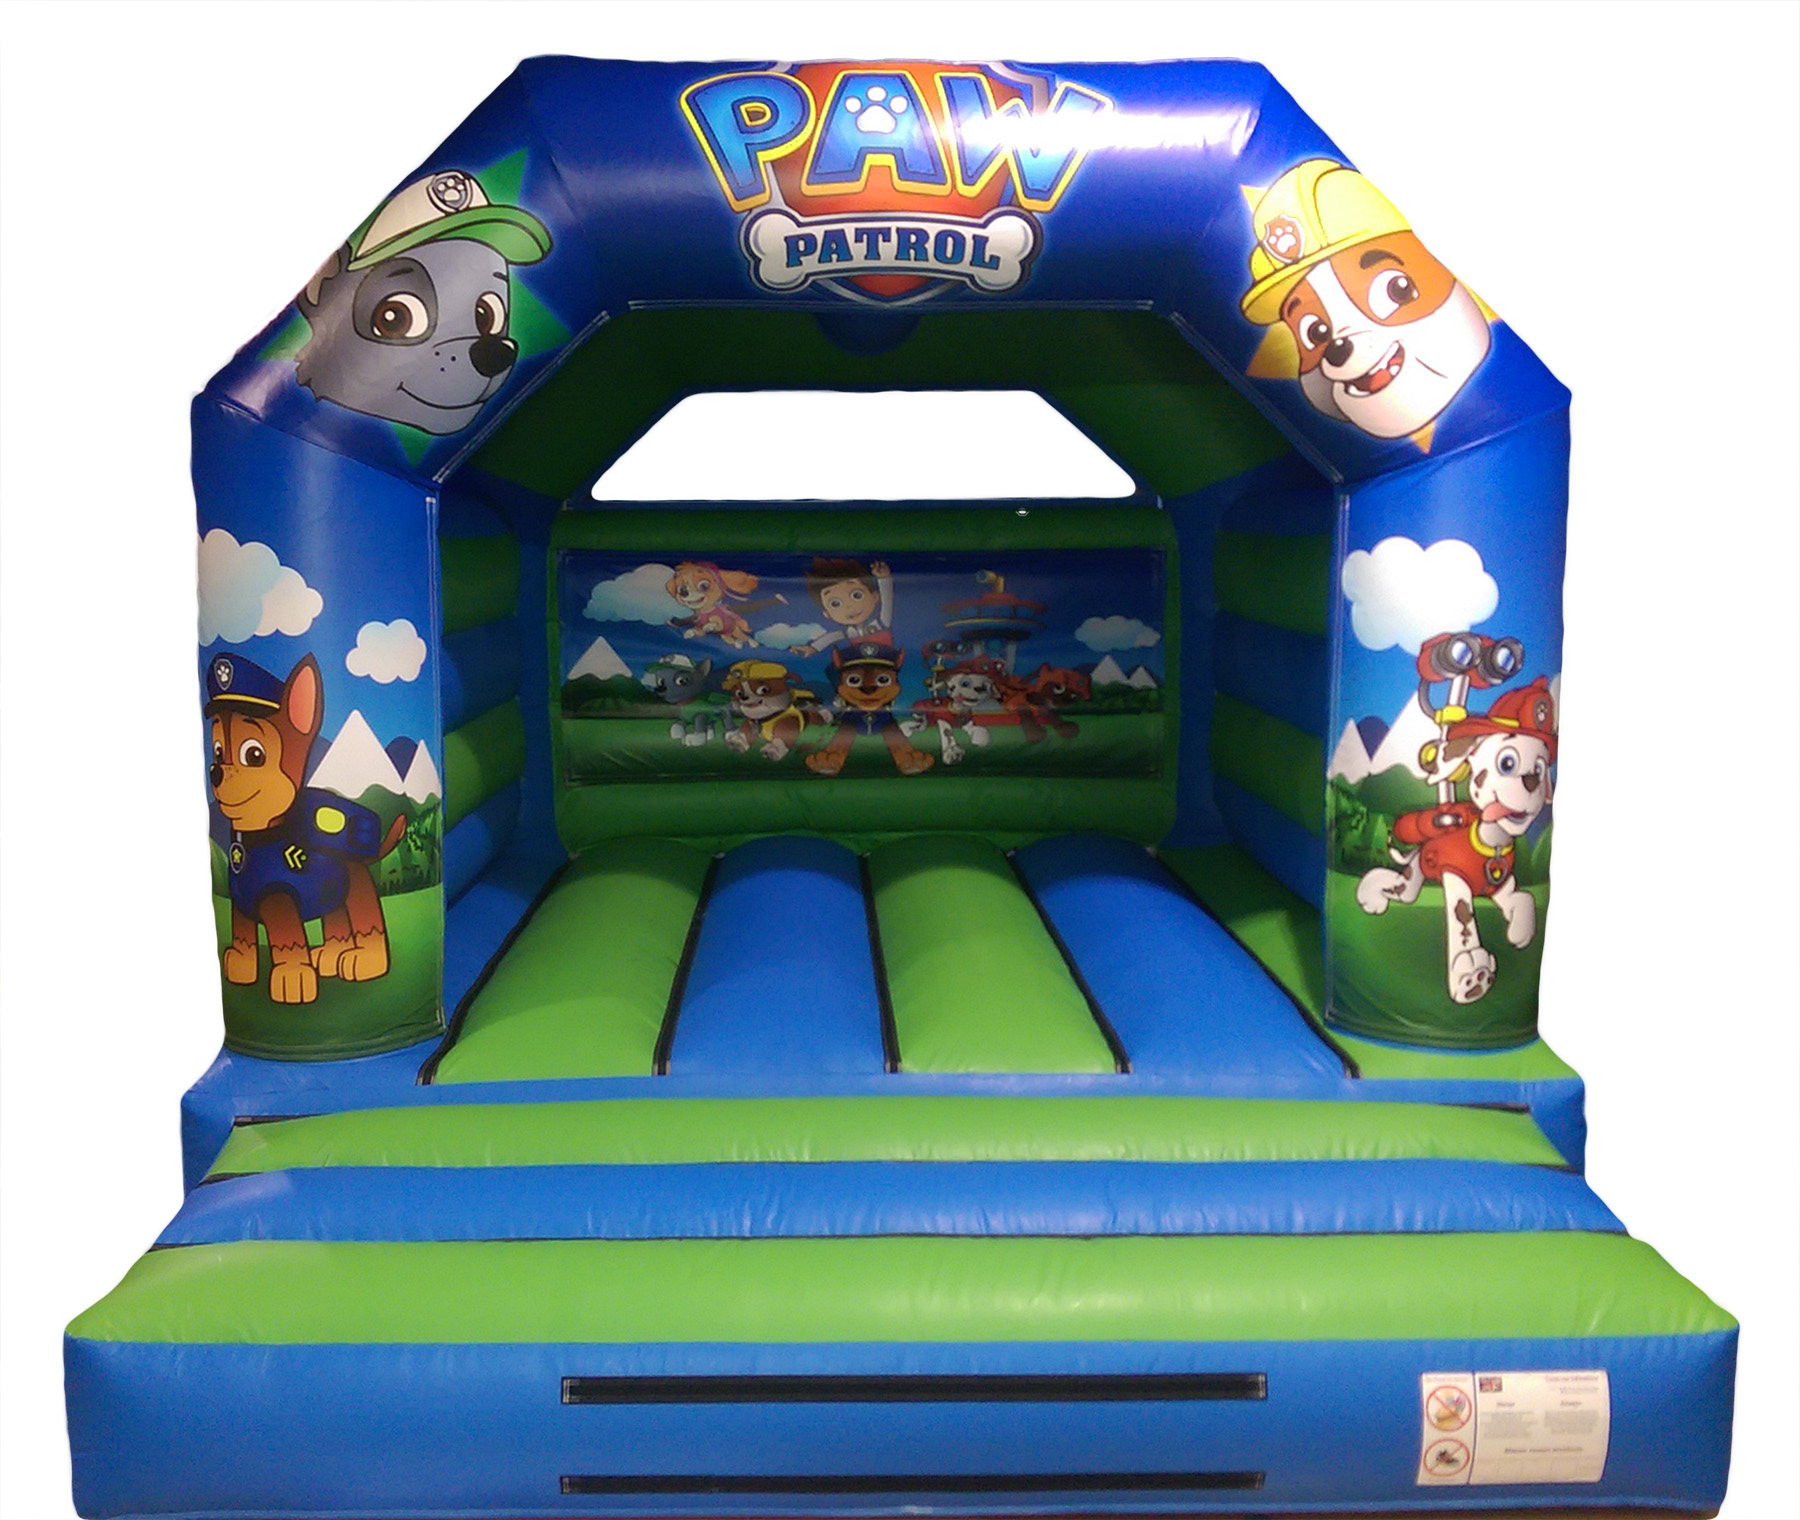 Patrol bouncy castle Hire Liverpool